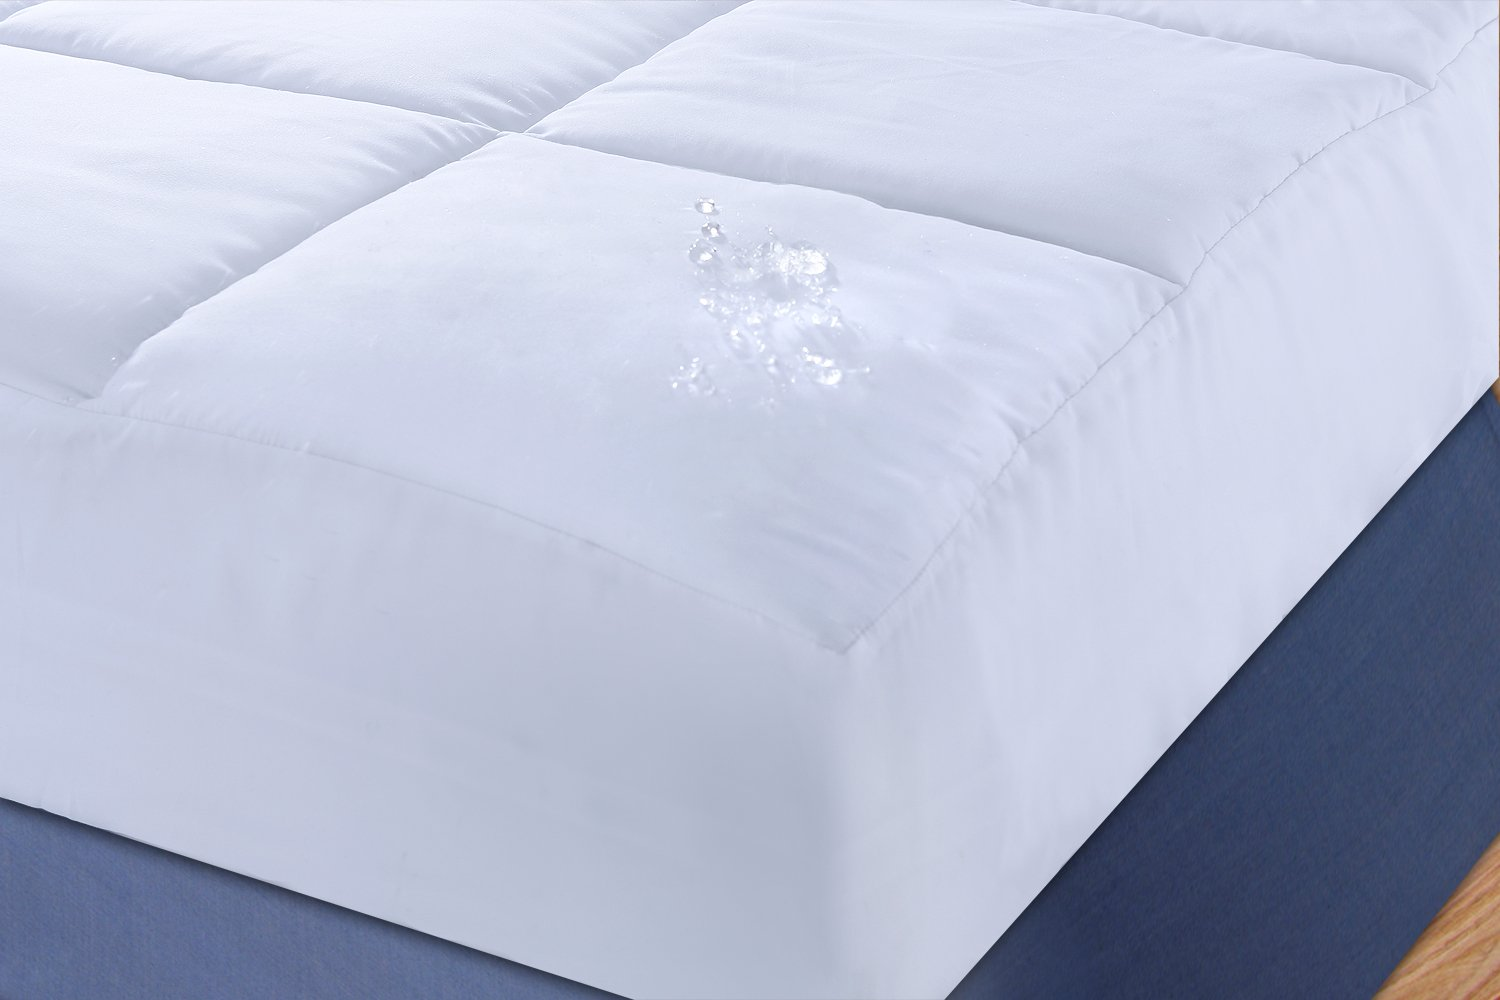 Stayclean Microfiber Water and Stain Resistant Mattress Pad, King Epoch Hometex Inc 848342042650